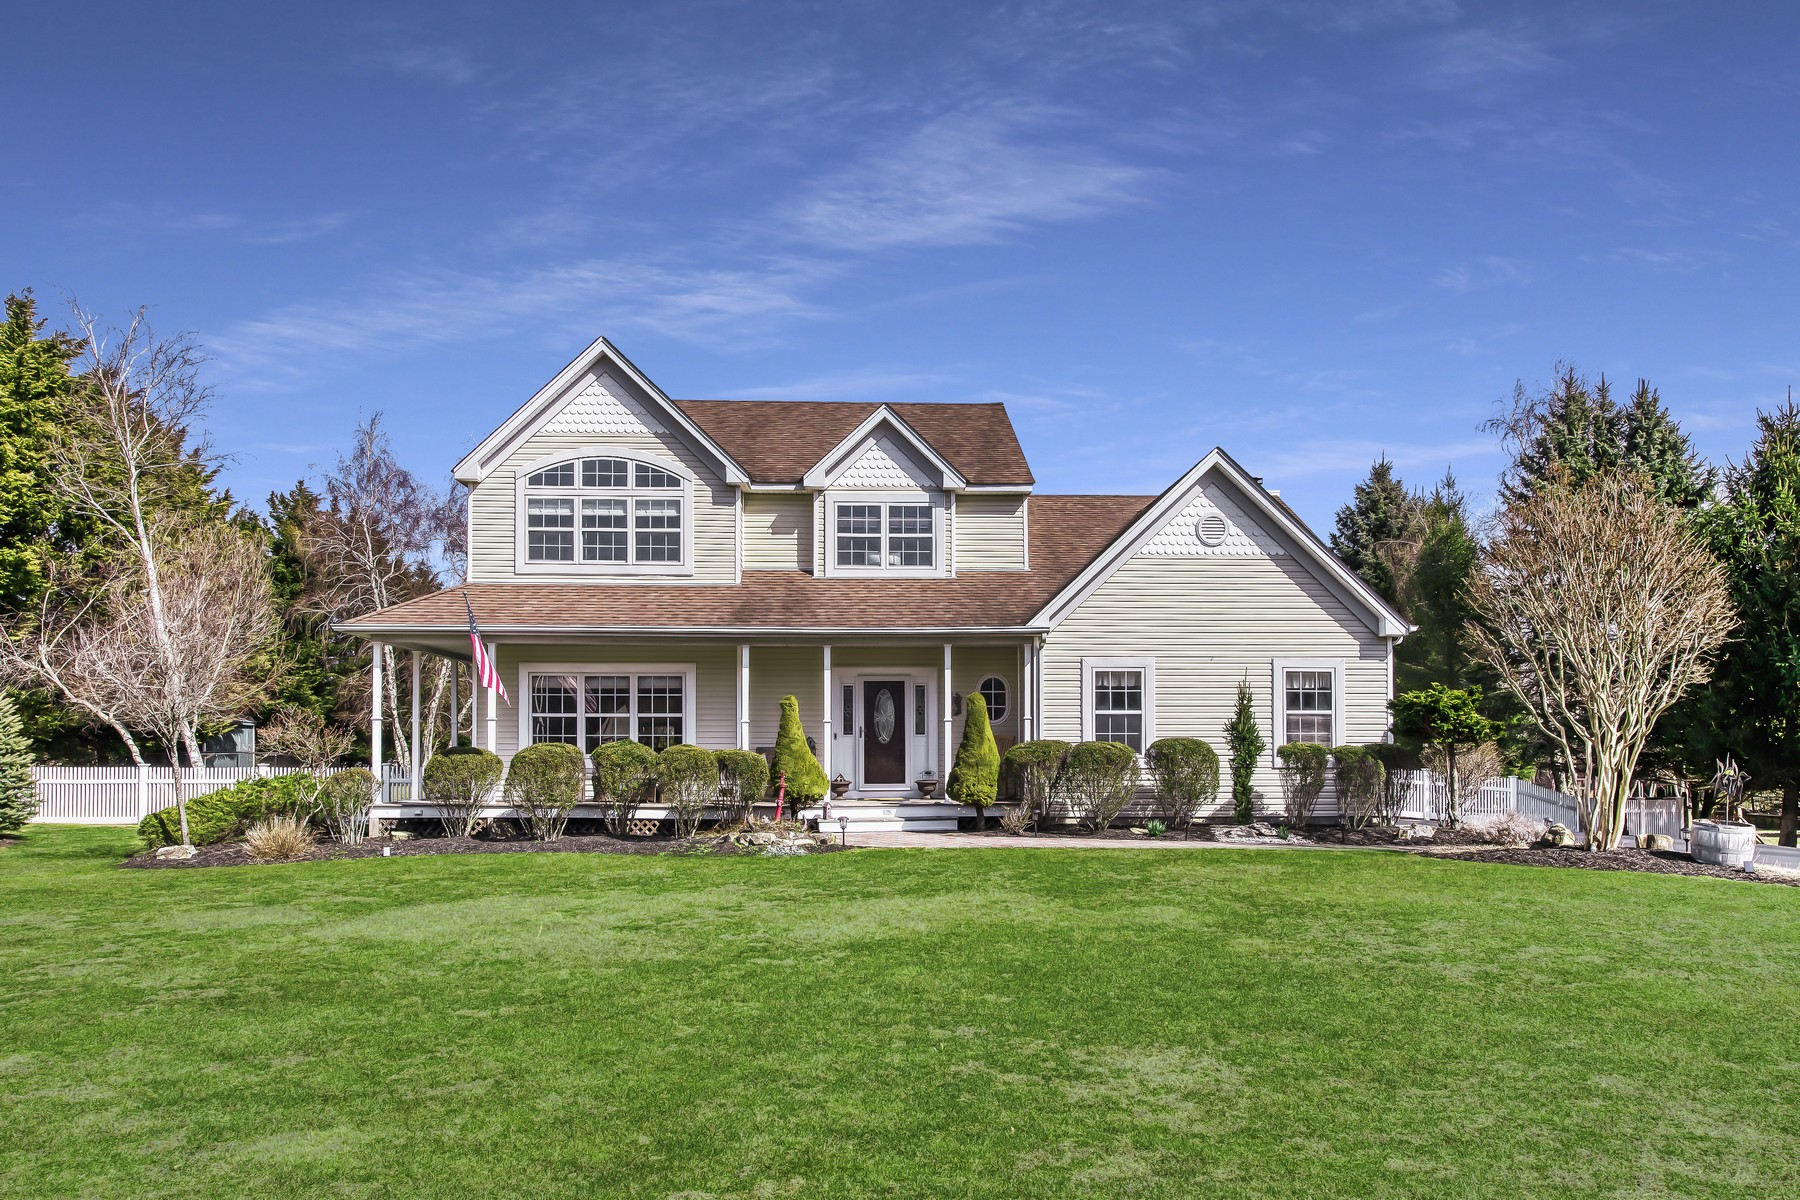 Single Family Homes for Sale at Southold 1450 Laurel Avenue Southold, New York 11971 United States